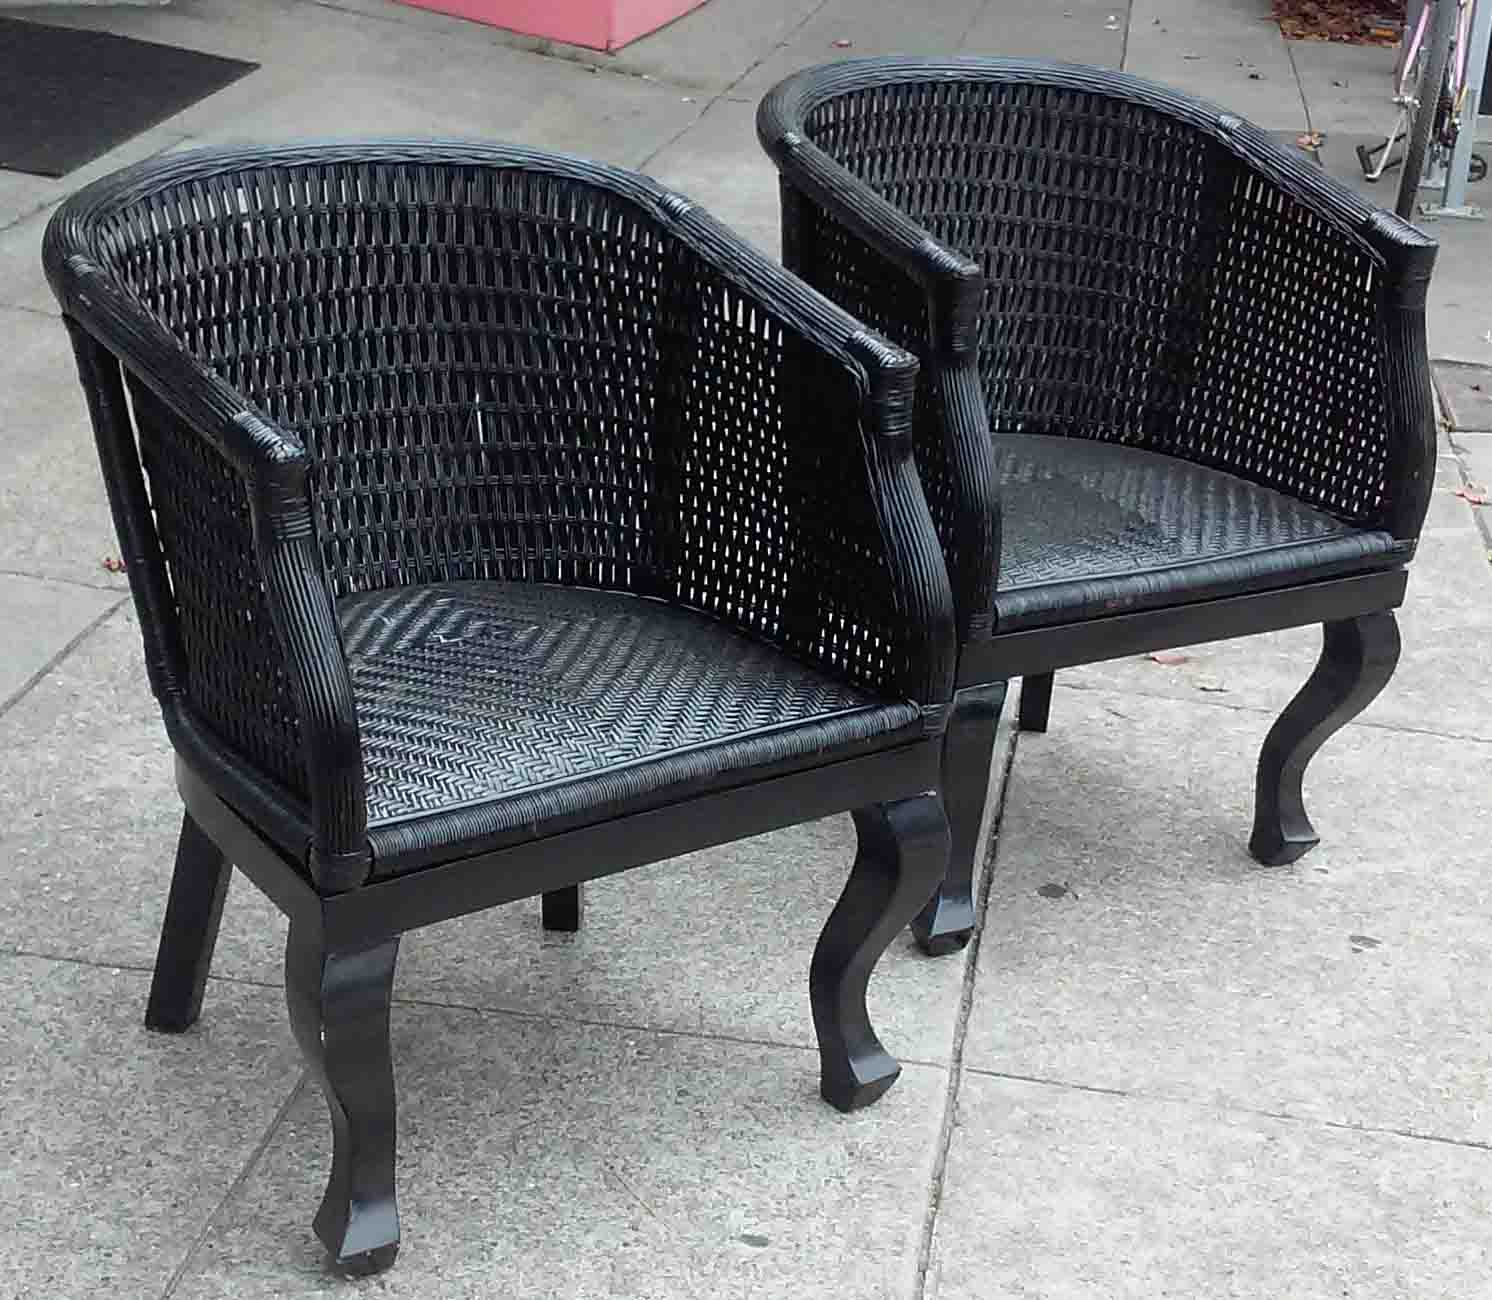 Woven Outdoor Chair Reindeer Christmas Covers Uhuru Furniture And Collectibles Sold Black Wicker Patio